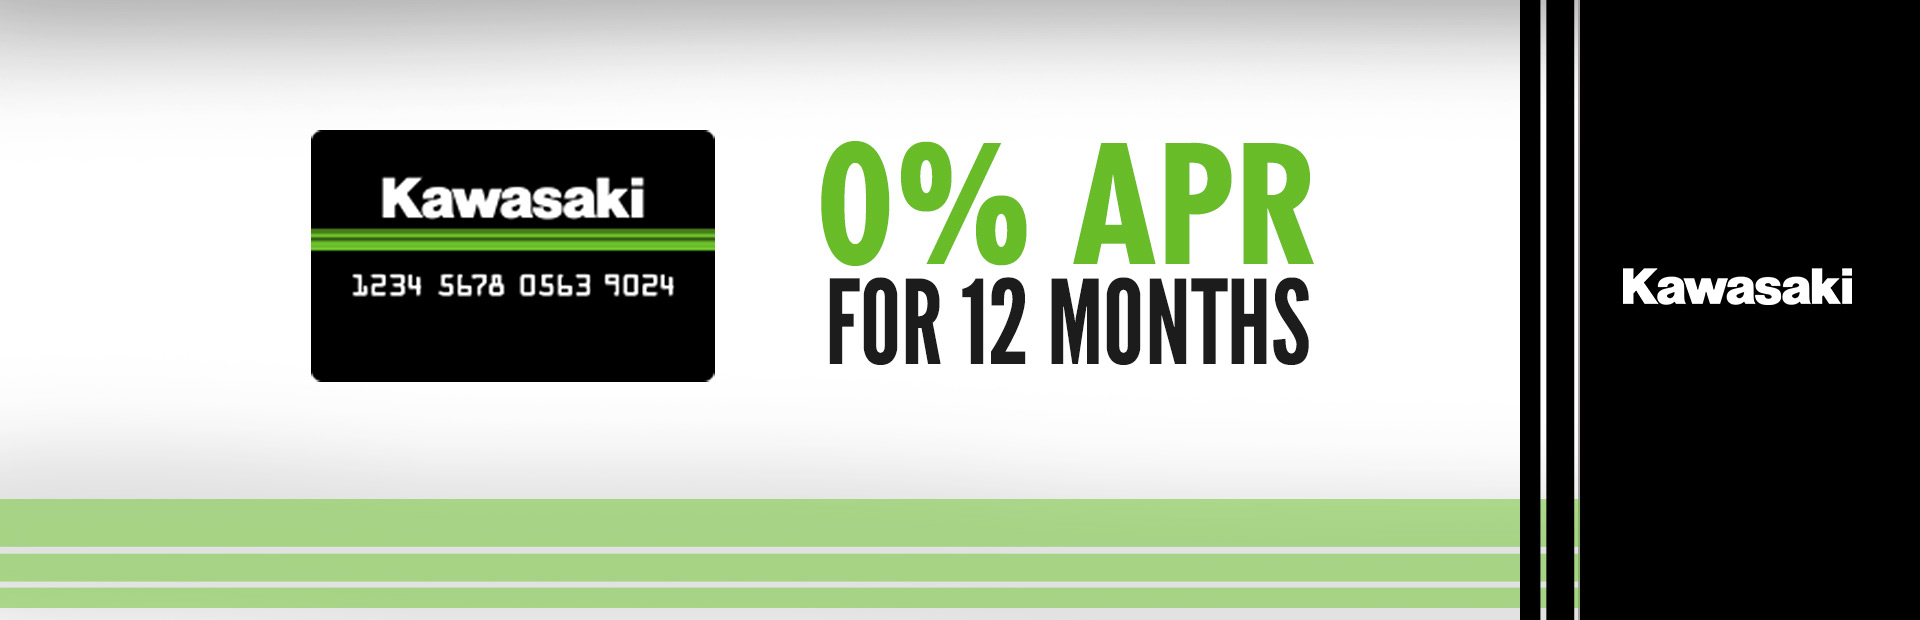 Kawasaki Card Offer 0% APR for 12 Months